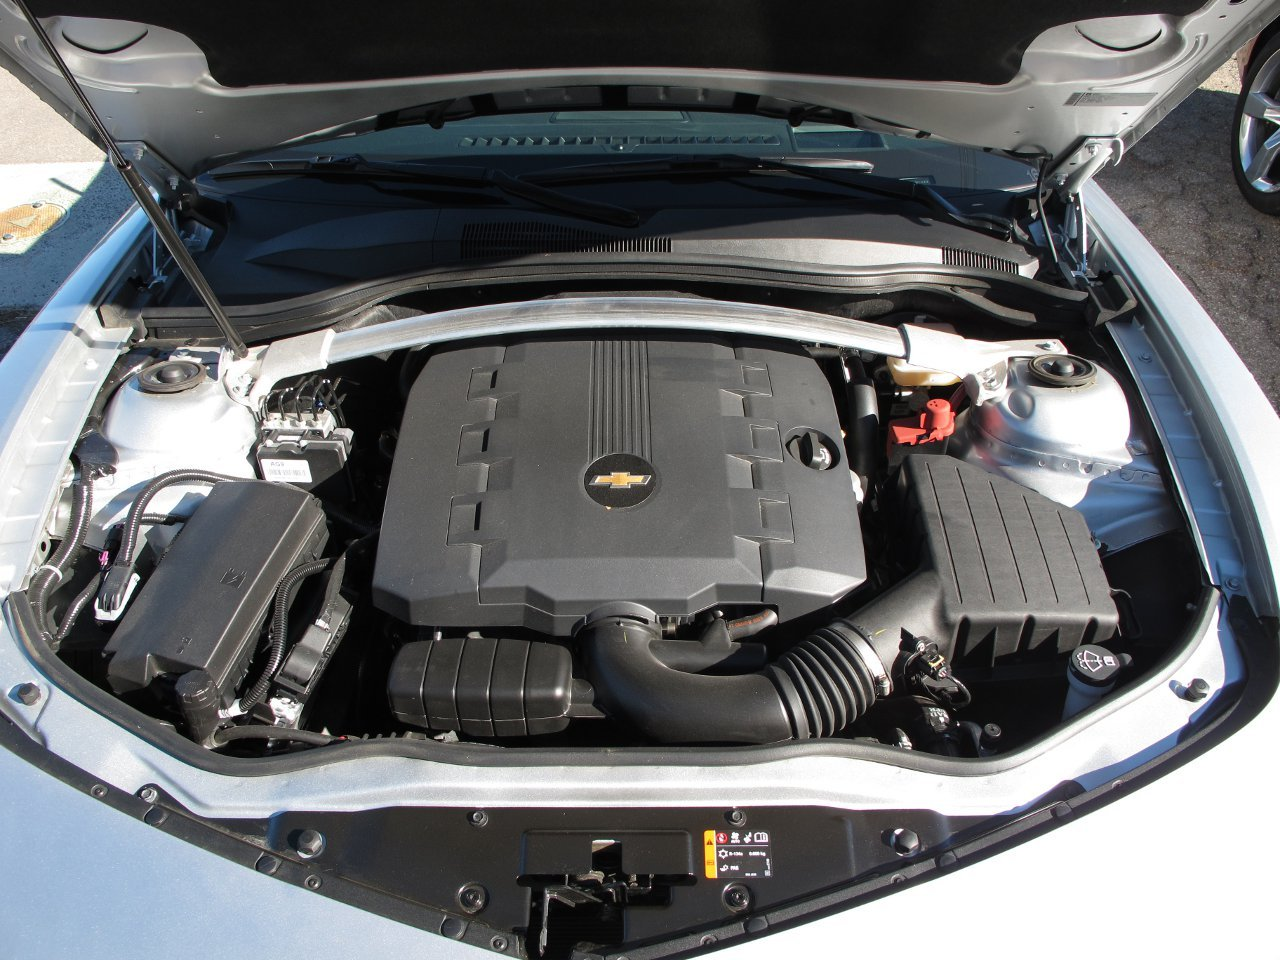 picture of GM HFV6 engine in Chevrolet Camaro, 2011